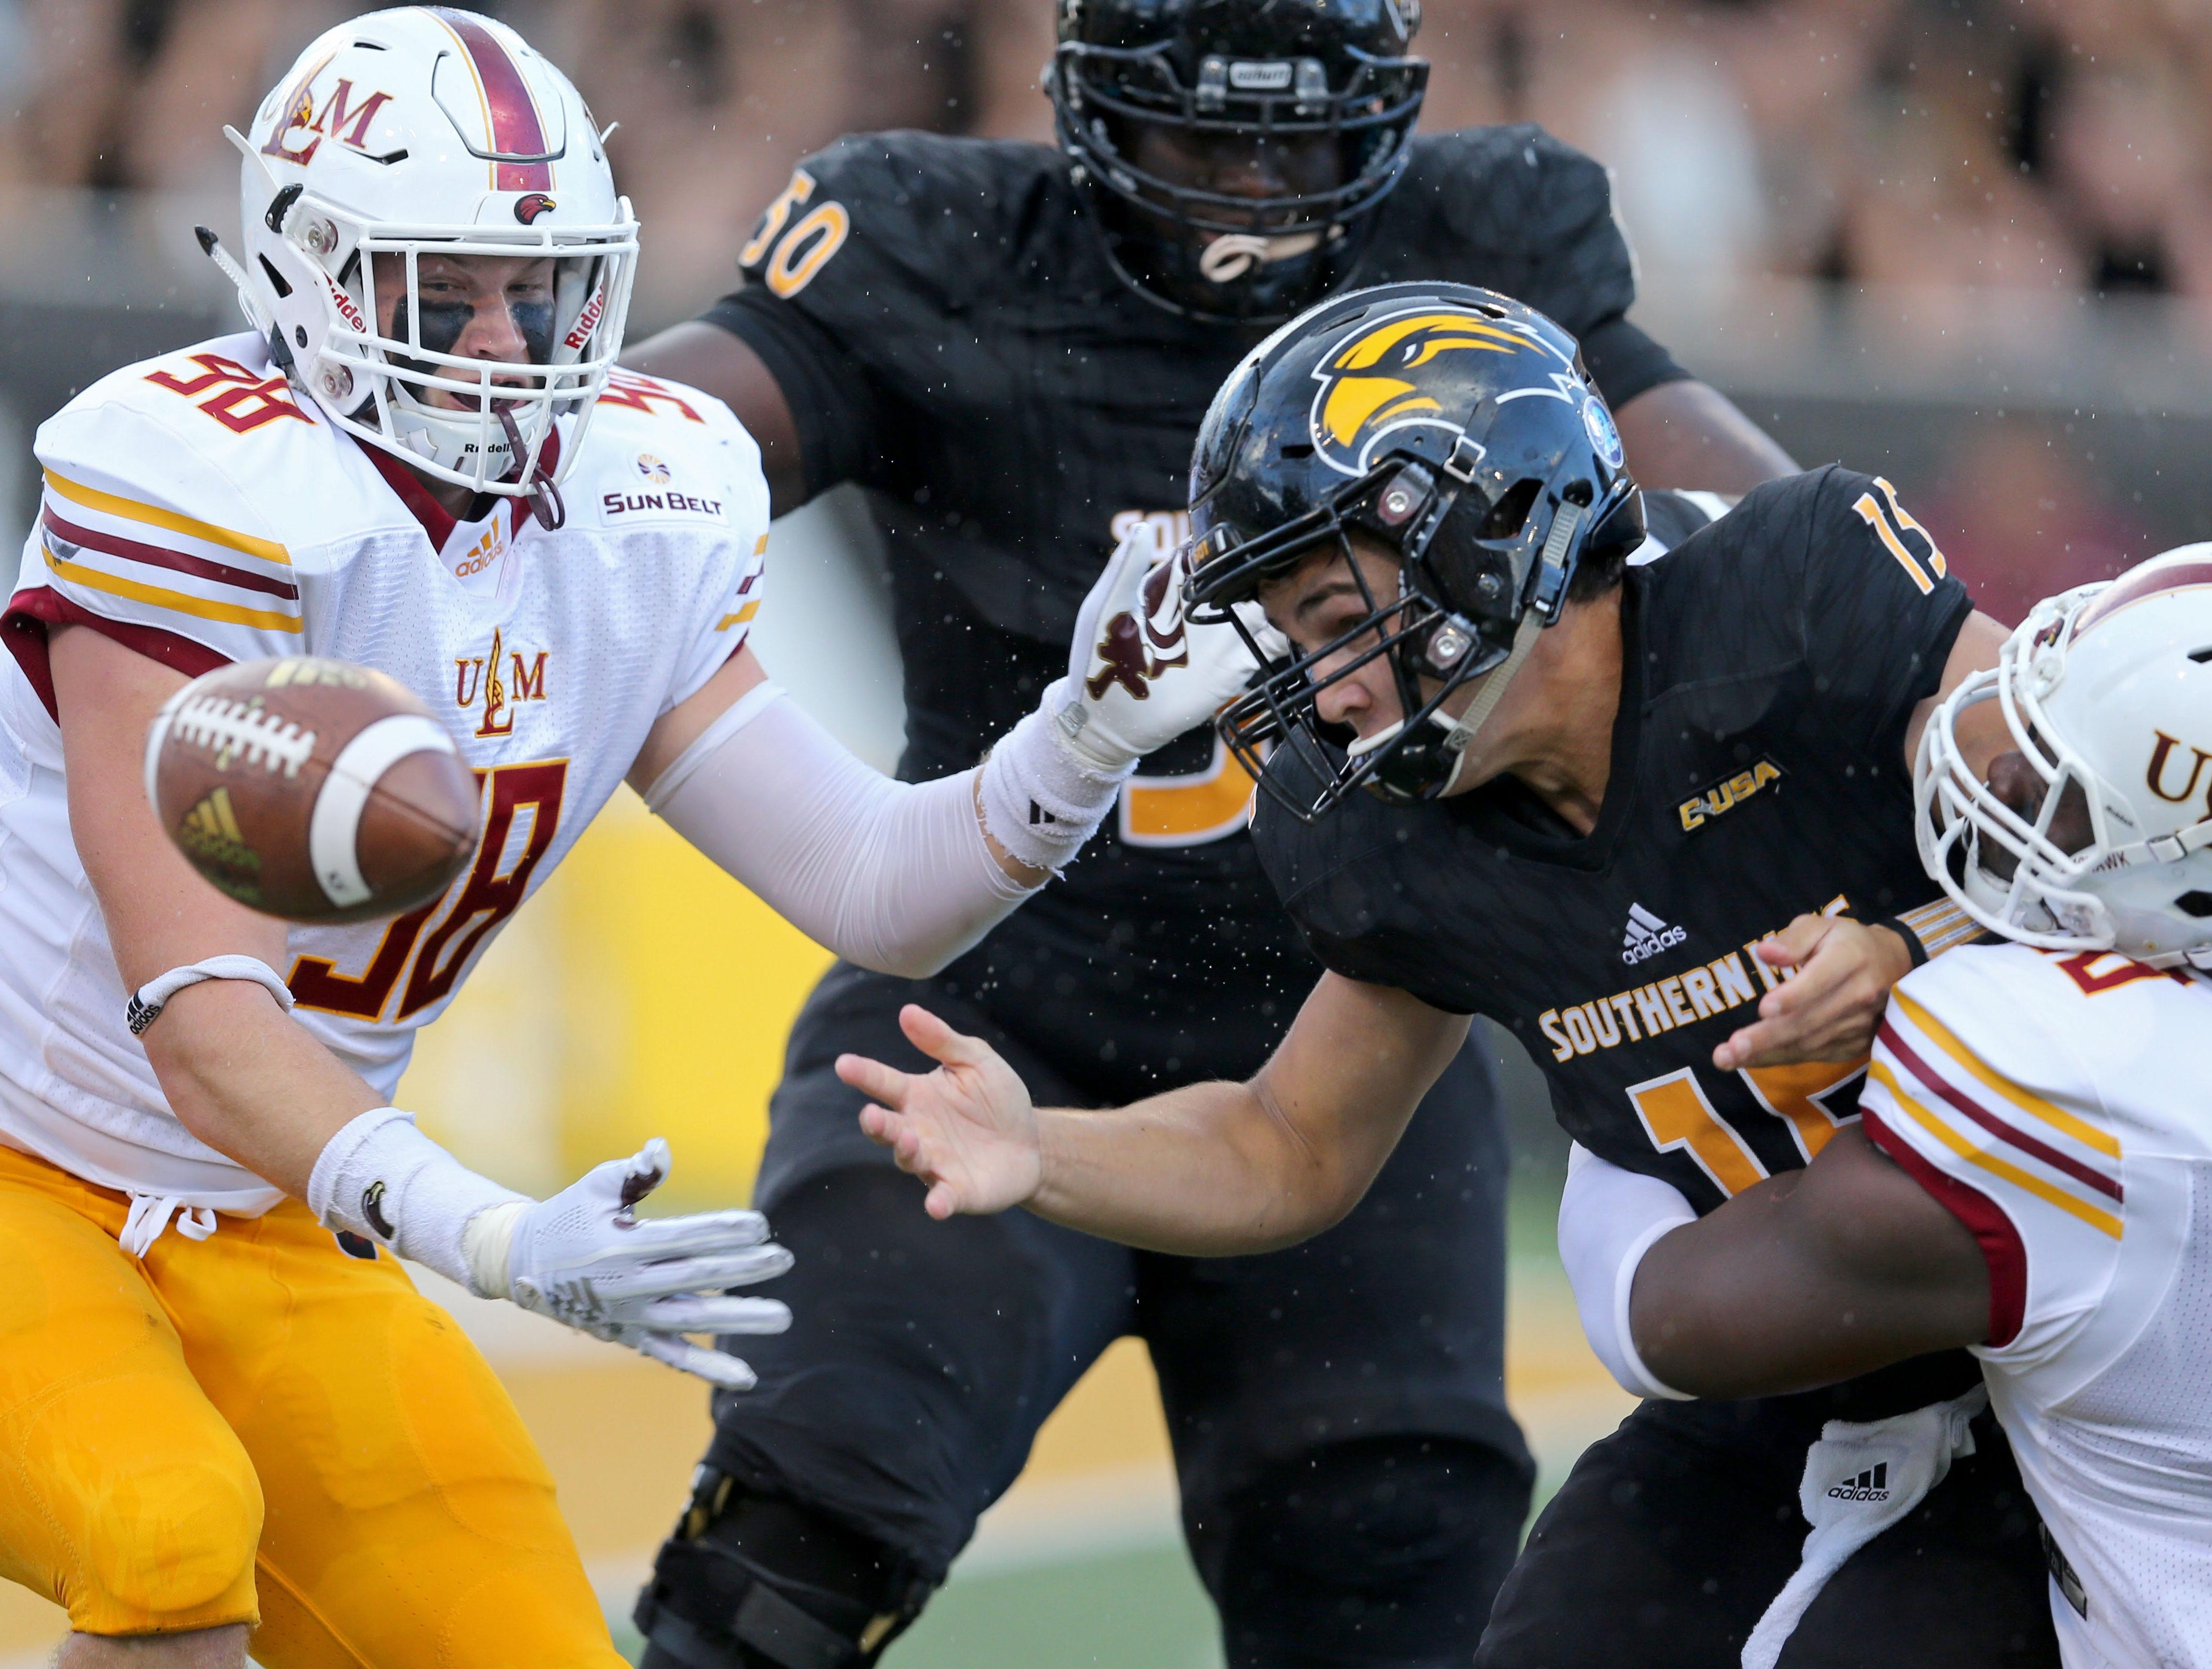 Sep 8, 2018; Hattiesburg, MS, USA; Southern Miss Golden Eagles quarterback Jack Abraham (15) fumbles after being hit by Louisiana Monroe Warhawks defensive lineman Donald Louis Jr. (58), right, at M. M. Roberts Stadium. Louisiana Monroe Warhawks defensive end Sam Miller (98), left, recovered the ball in the end zone for a touchdown. Mandatory Credit: Chuck Cook-USA TODAY Sports